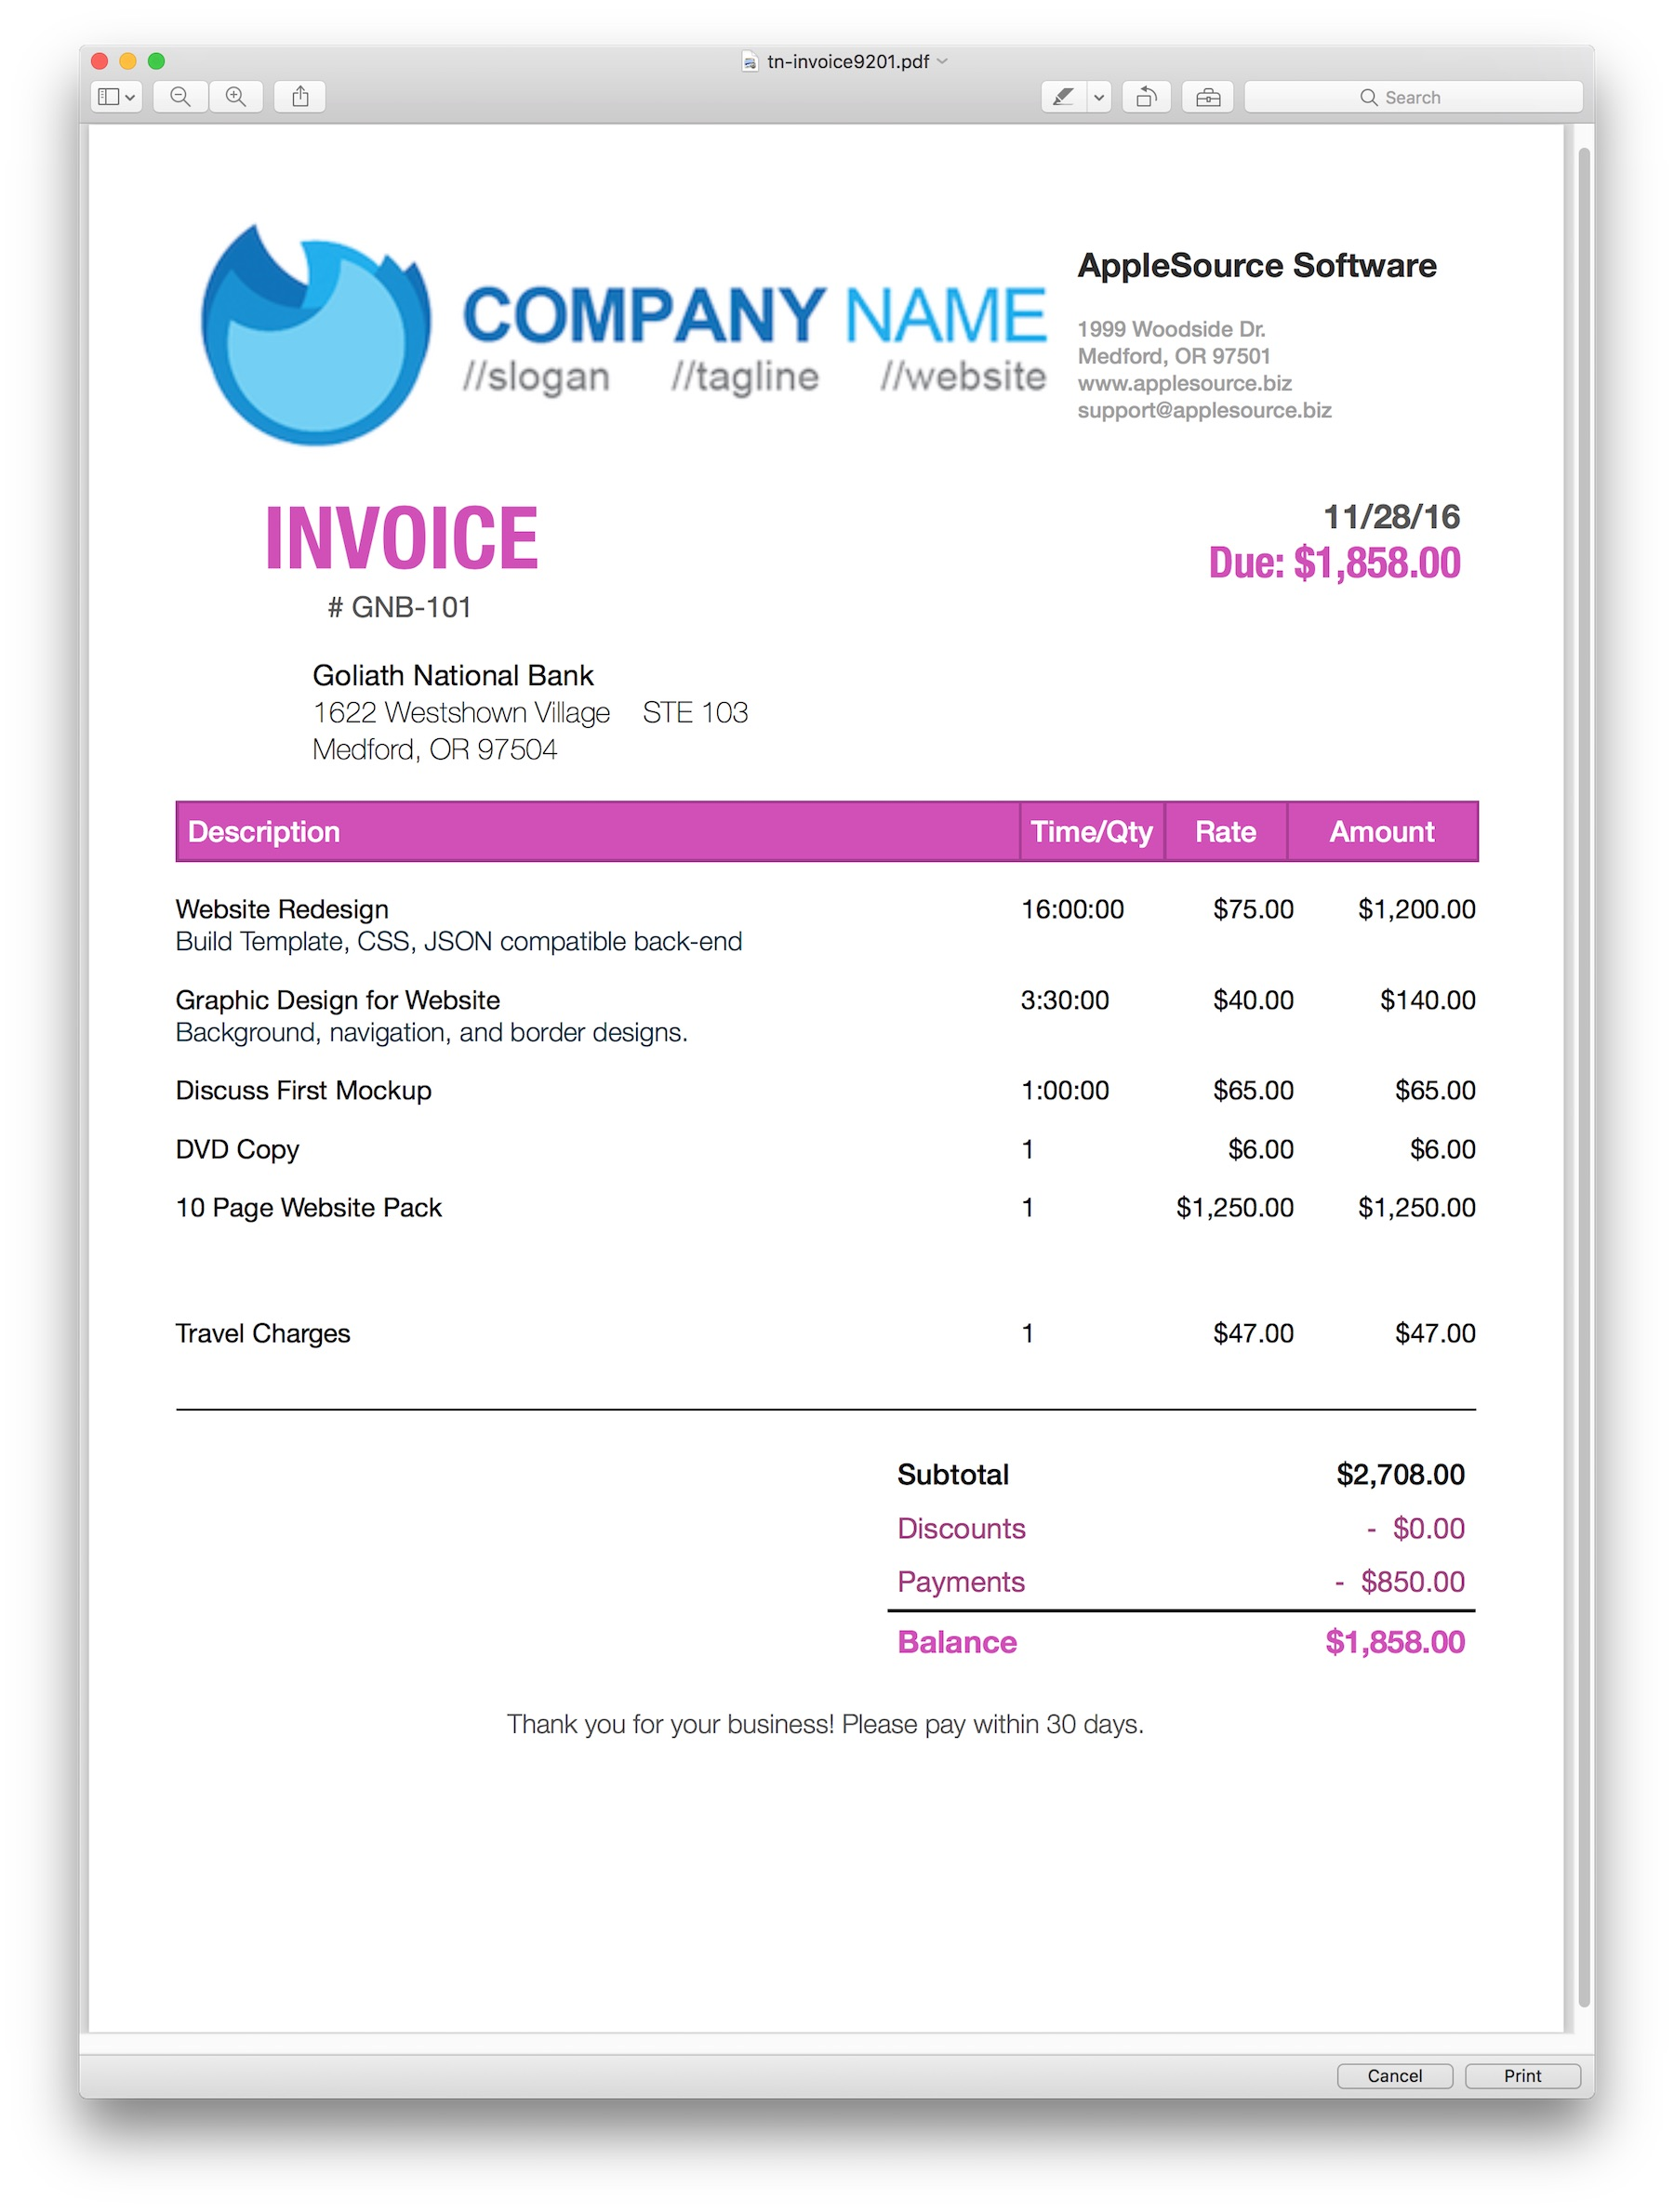 applesource software > timenet invoice templates - time tracking, Invoice examples